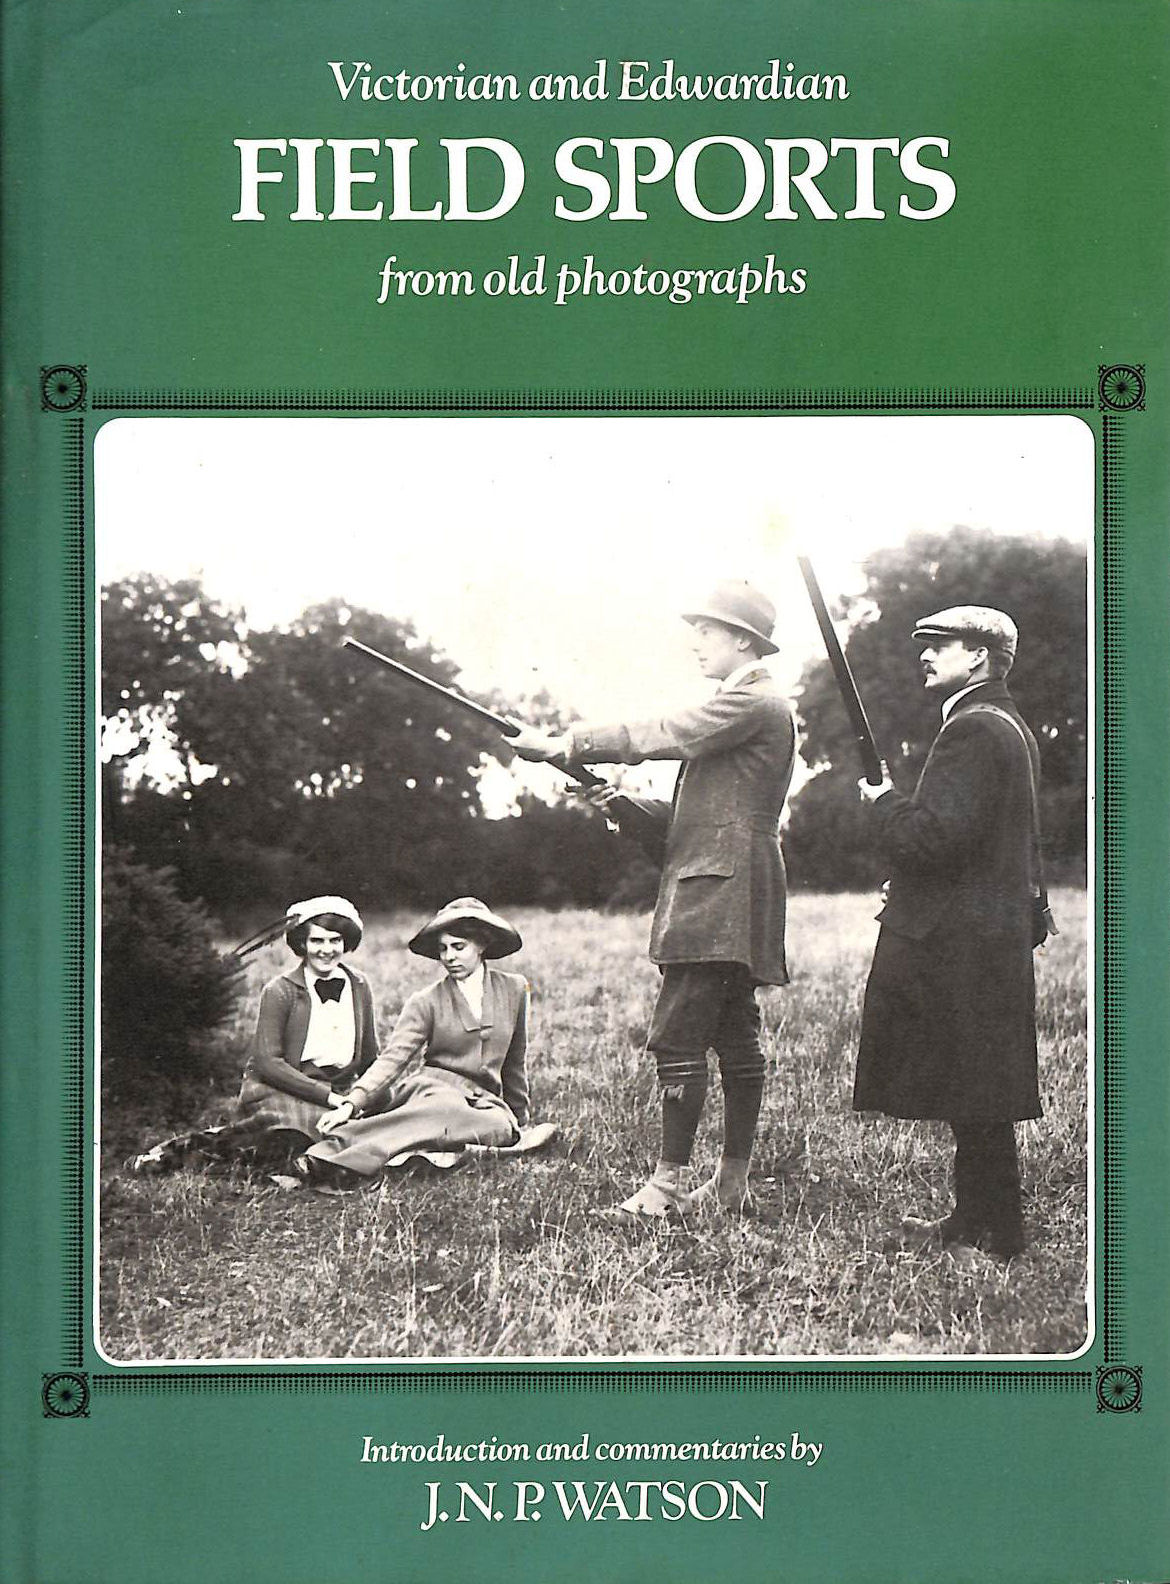 Image for Victorian and Edwardian Field Sports from old photographs